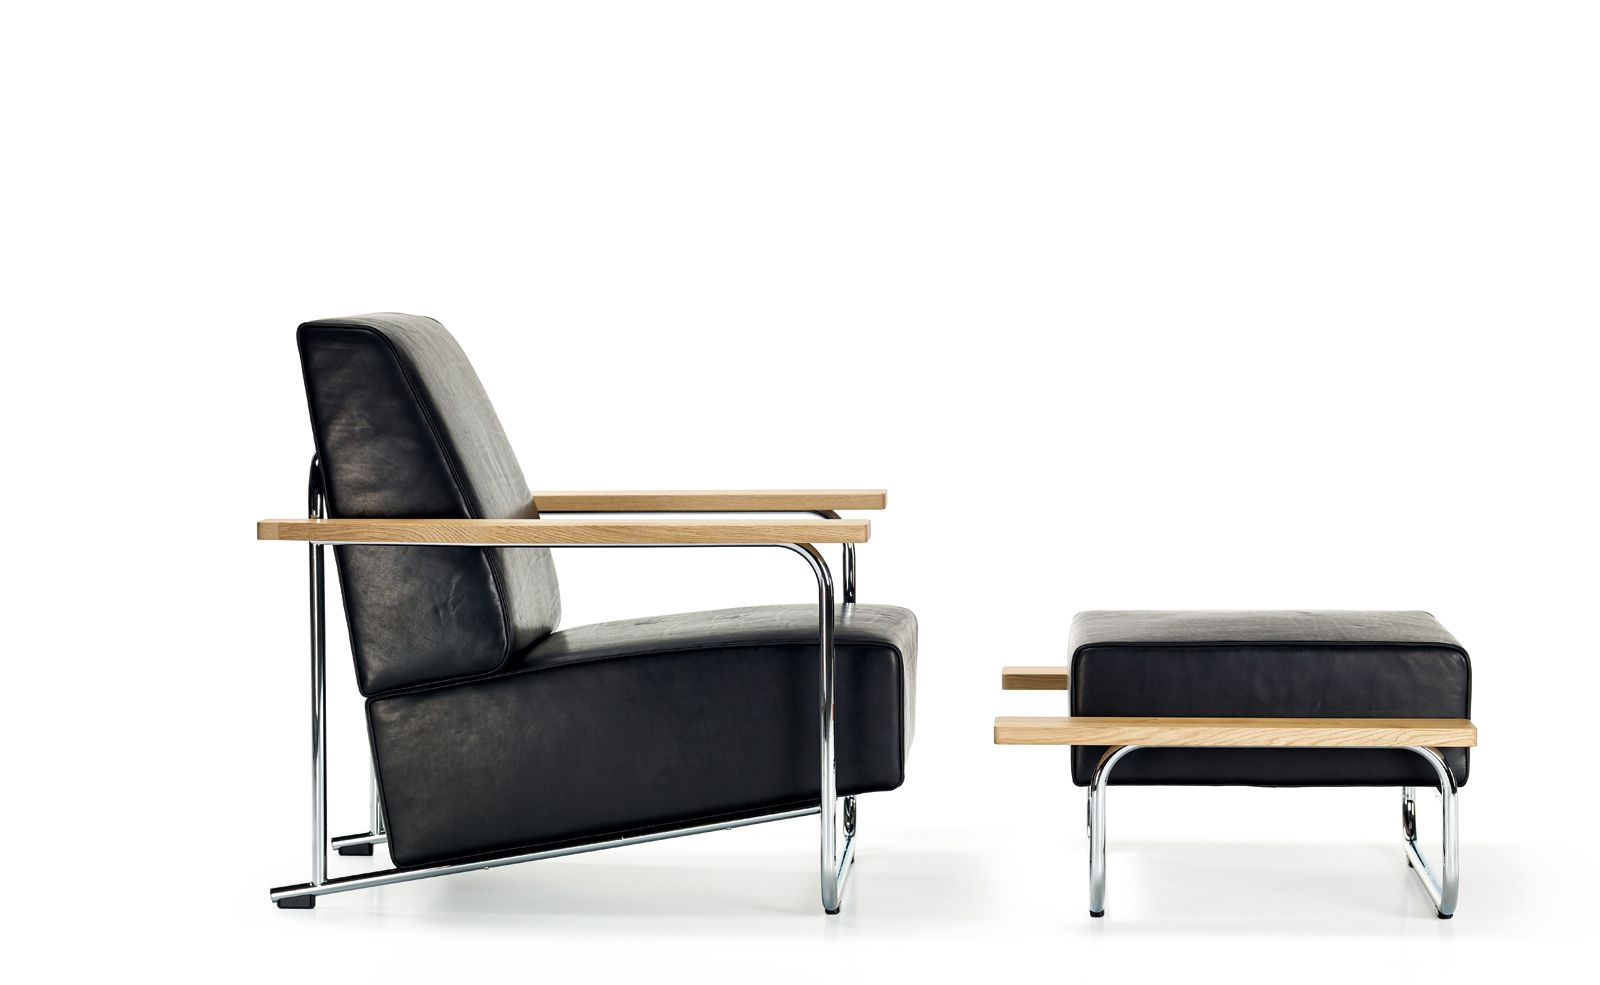 LOVELL EASY CHAIR + OTTOMAN Originally designed for the LOVELL HEALTH HOUSE in 1929, this version of EASY CHAIR only existed as a drawing until recently. While reminiscent of Bauhaus furniture, the organic solid oak armrests lend it a comfort and solidity all of its own.